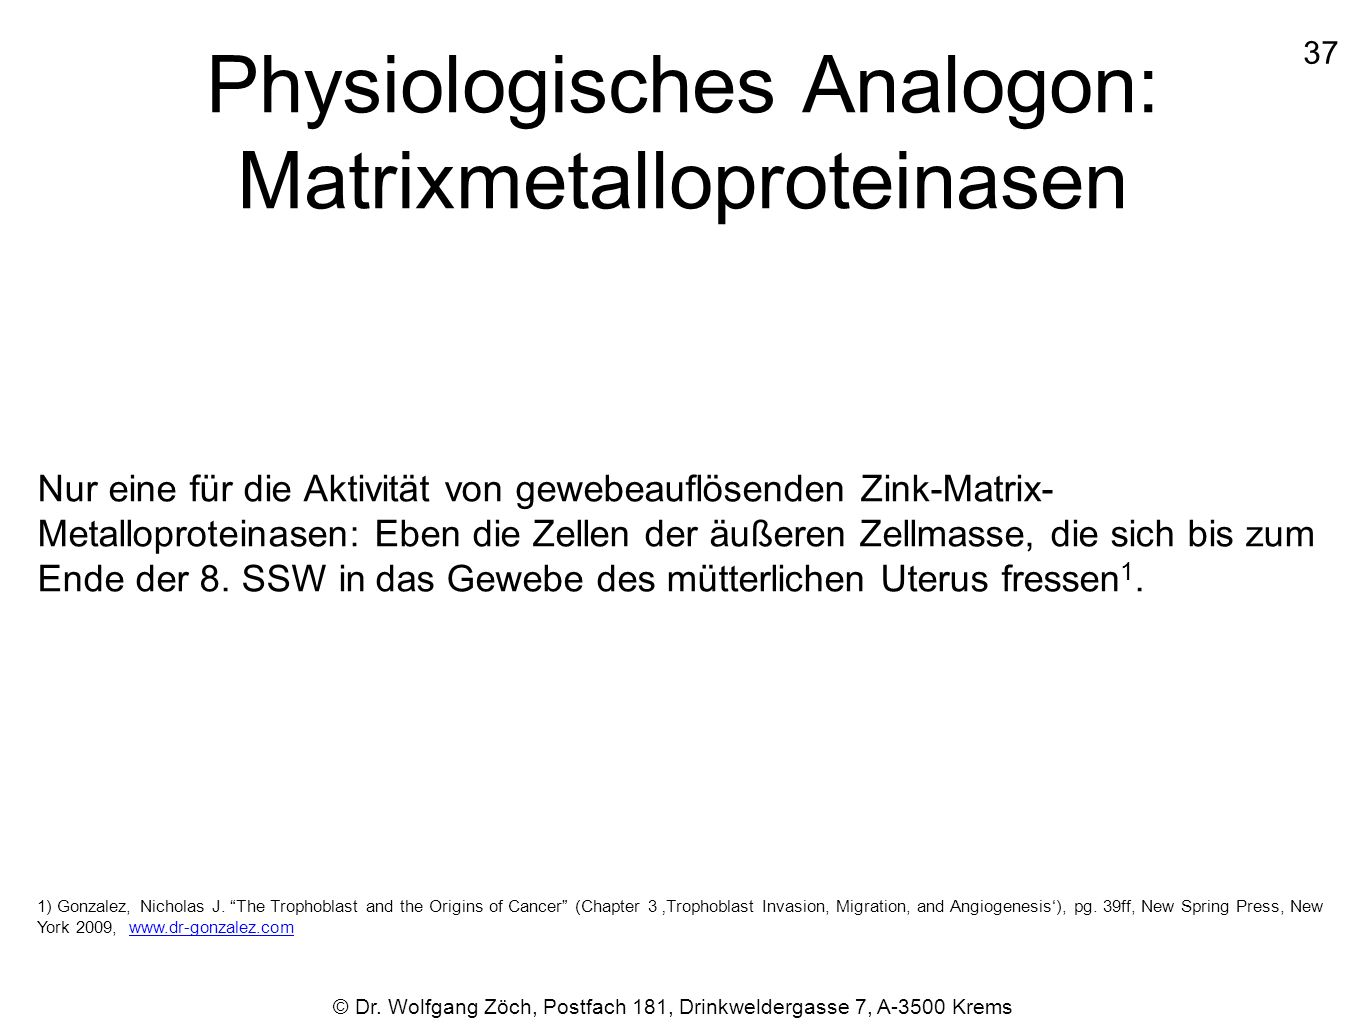 Physiologisches Analogon: Matrixmetalloproteinasen